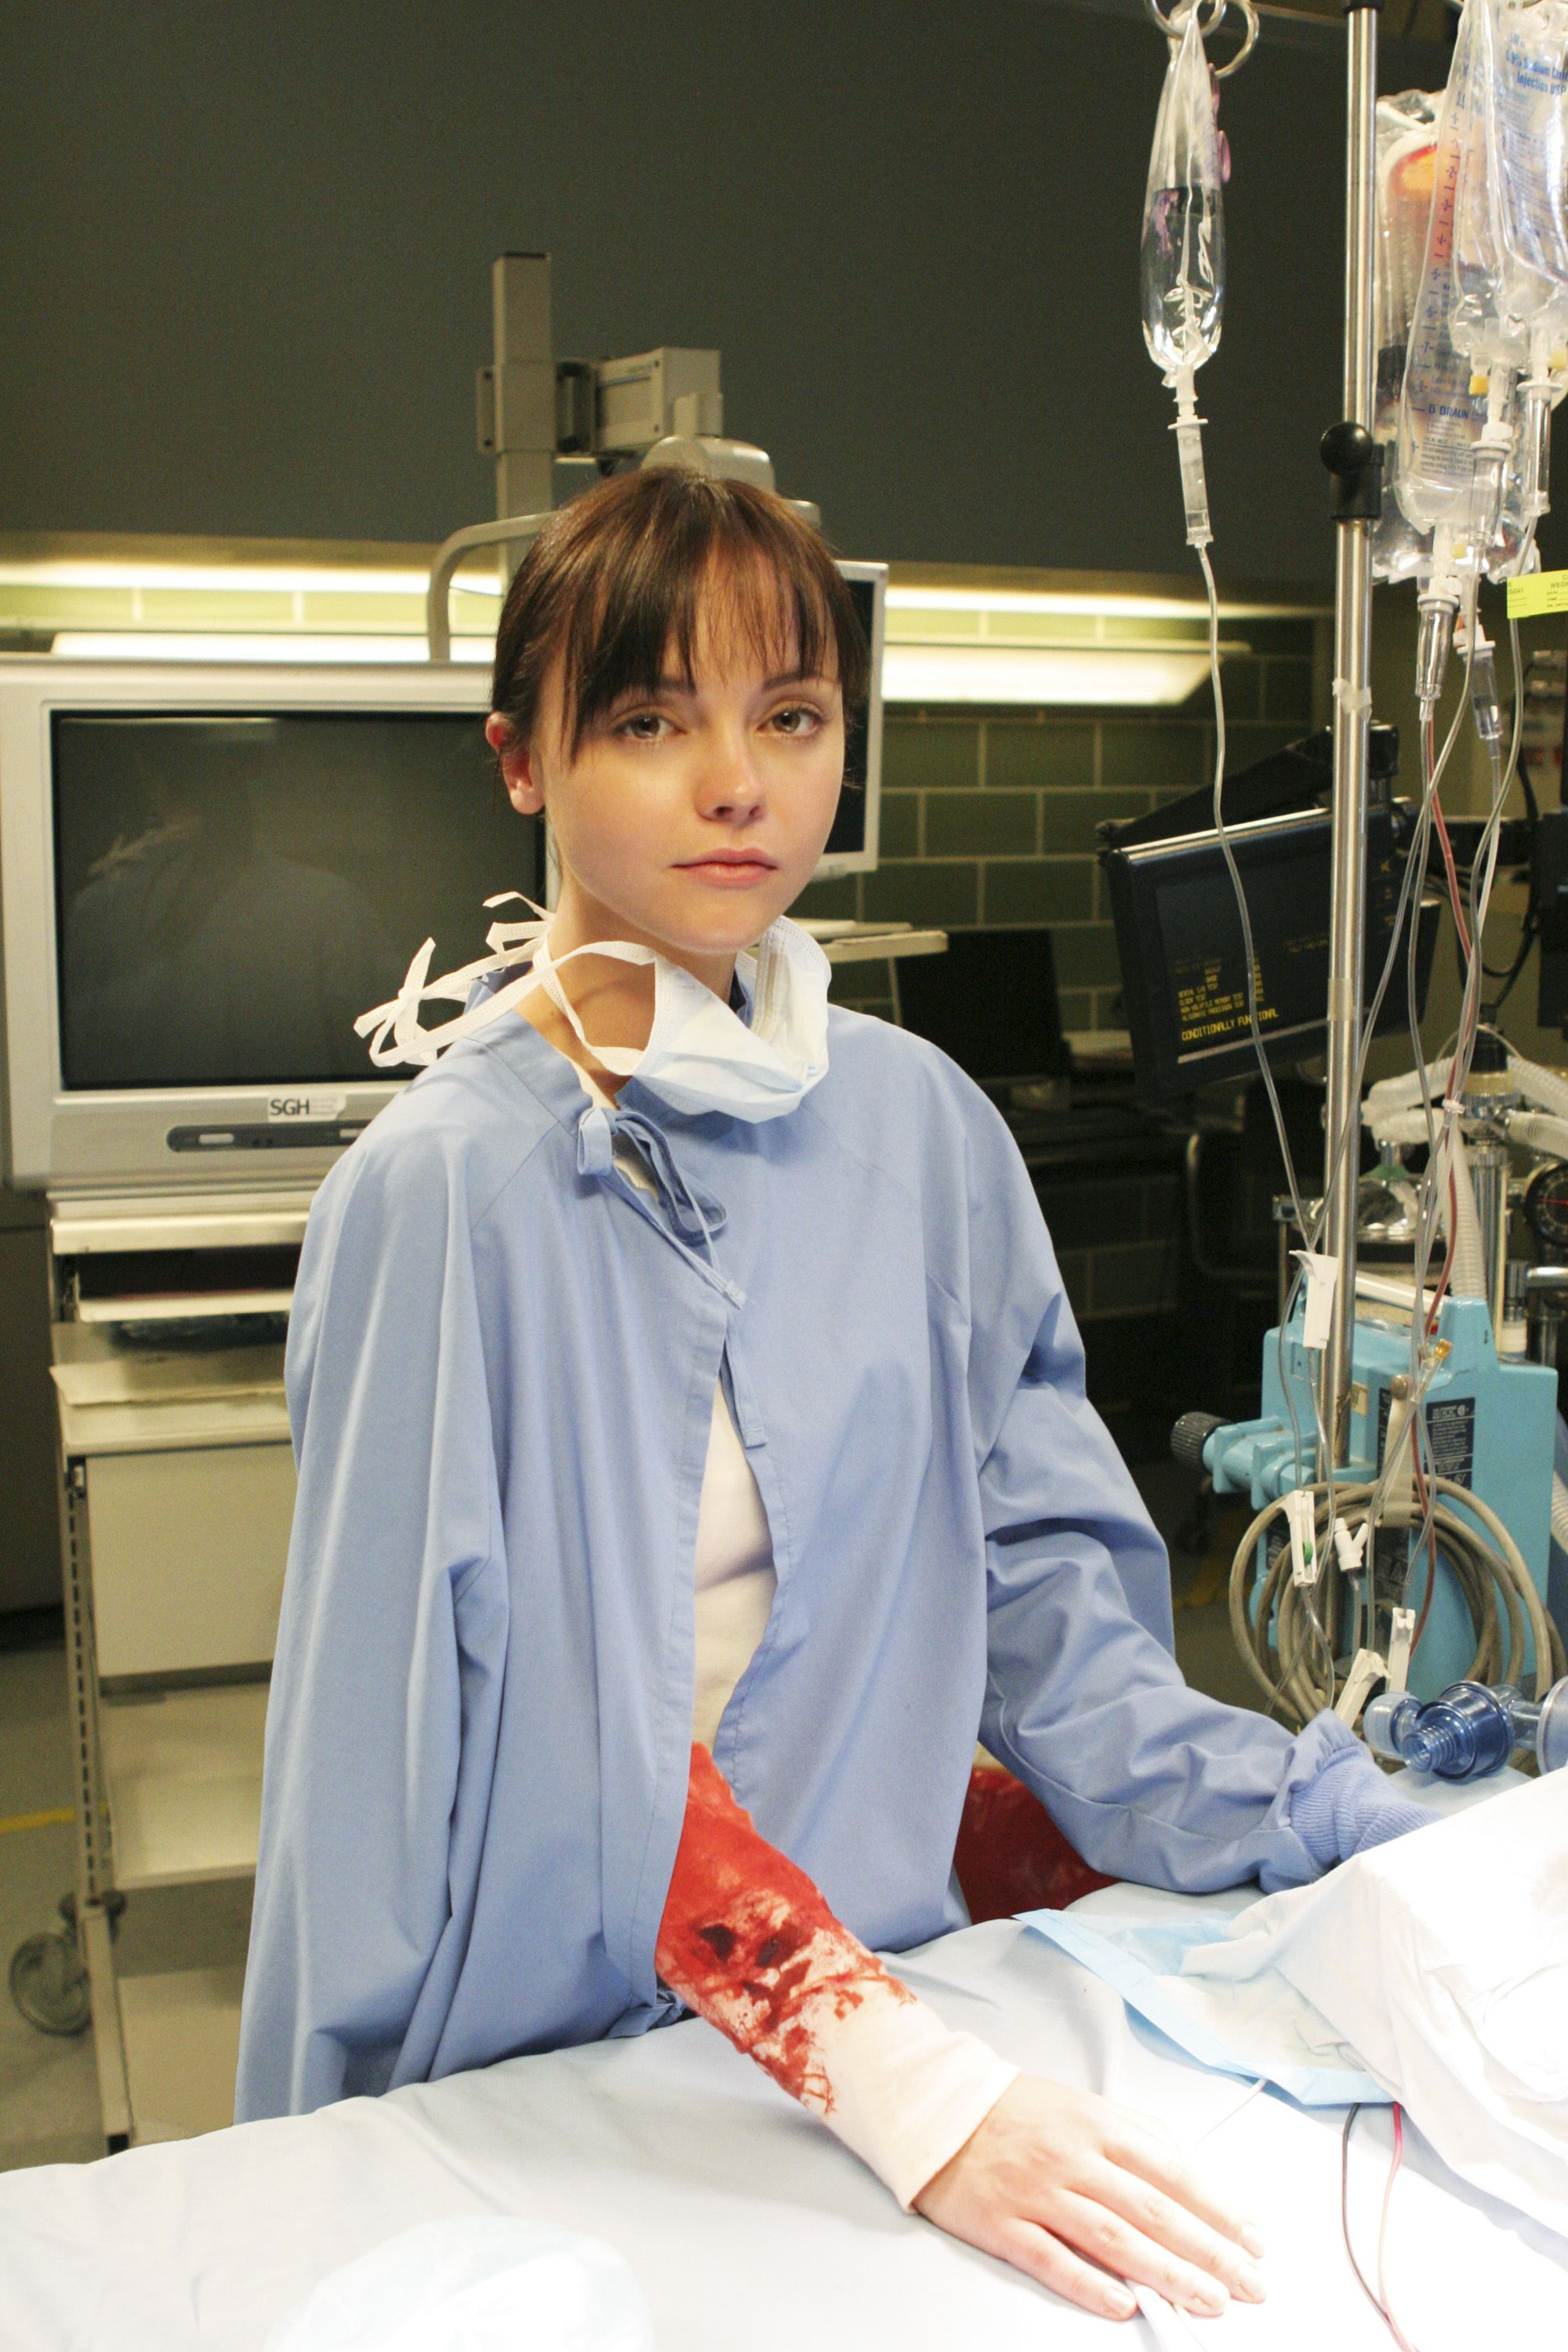 35 Actors Who Made Cameos 'Grey's Anatomy' - 'Grey's Anatomy